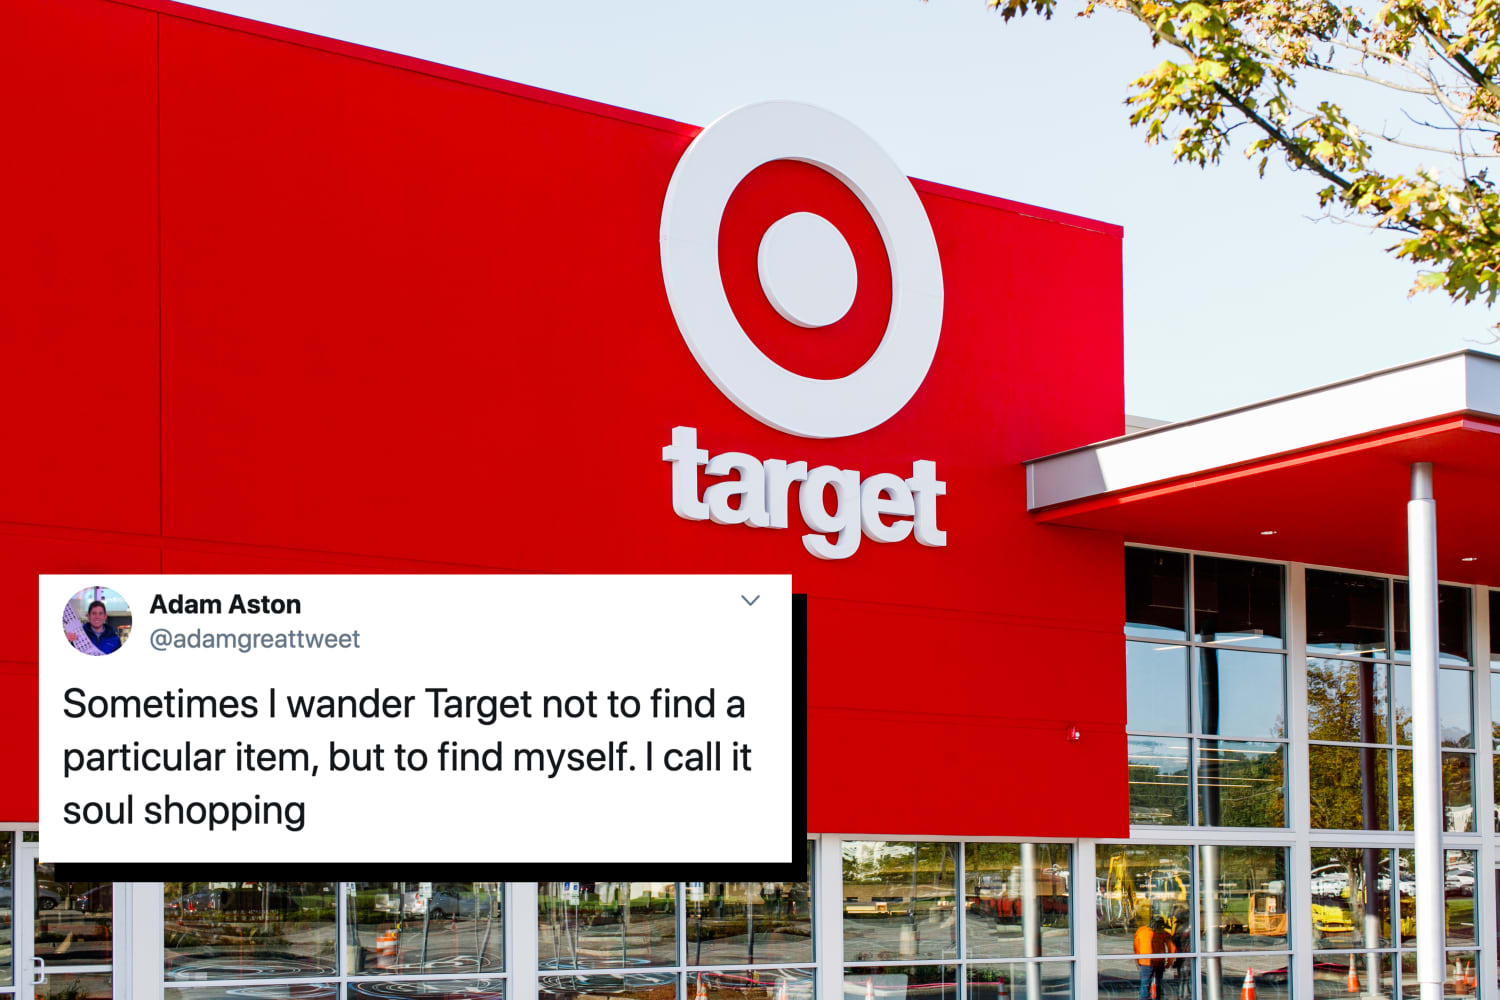 Thoughts We've Had While Shopping at Target, According to Twitter